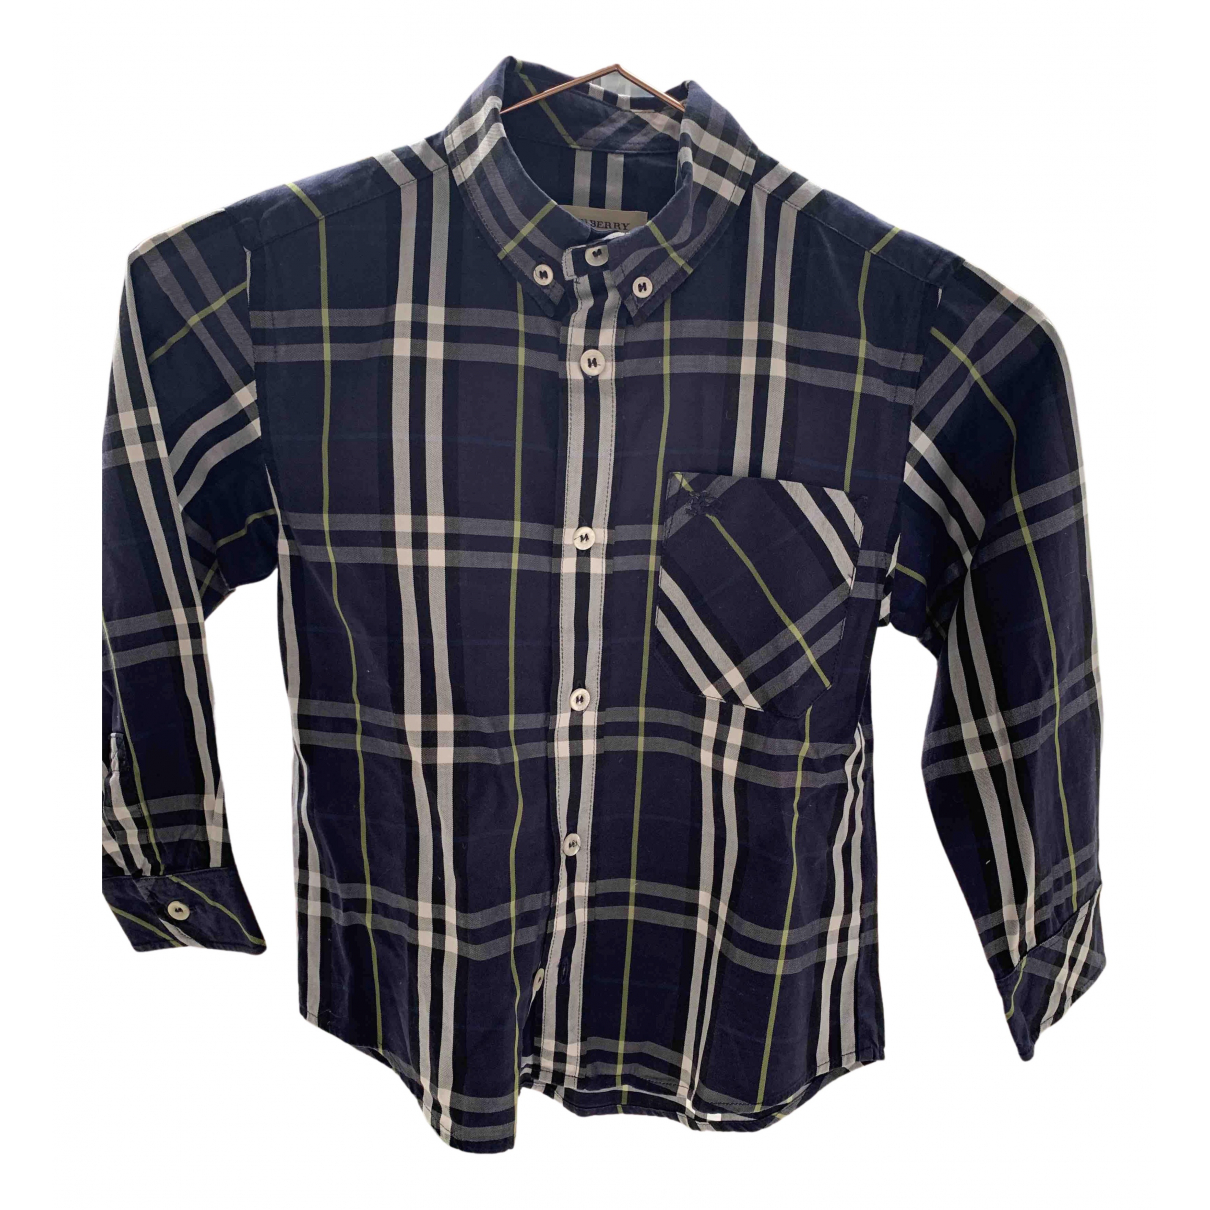 Burberry N Blue Cotton  top for Kids 8 years - until 50 inches UK